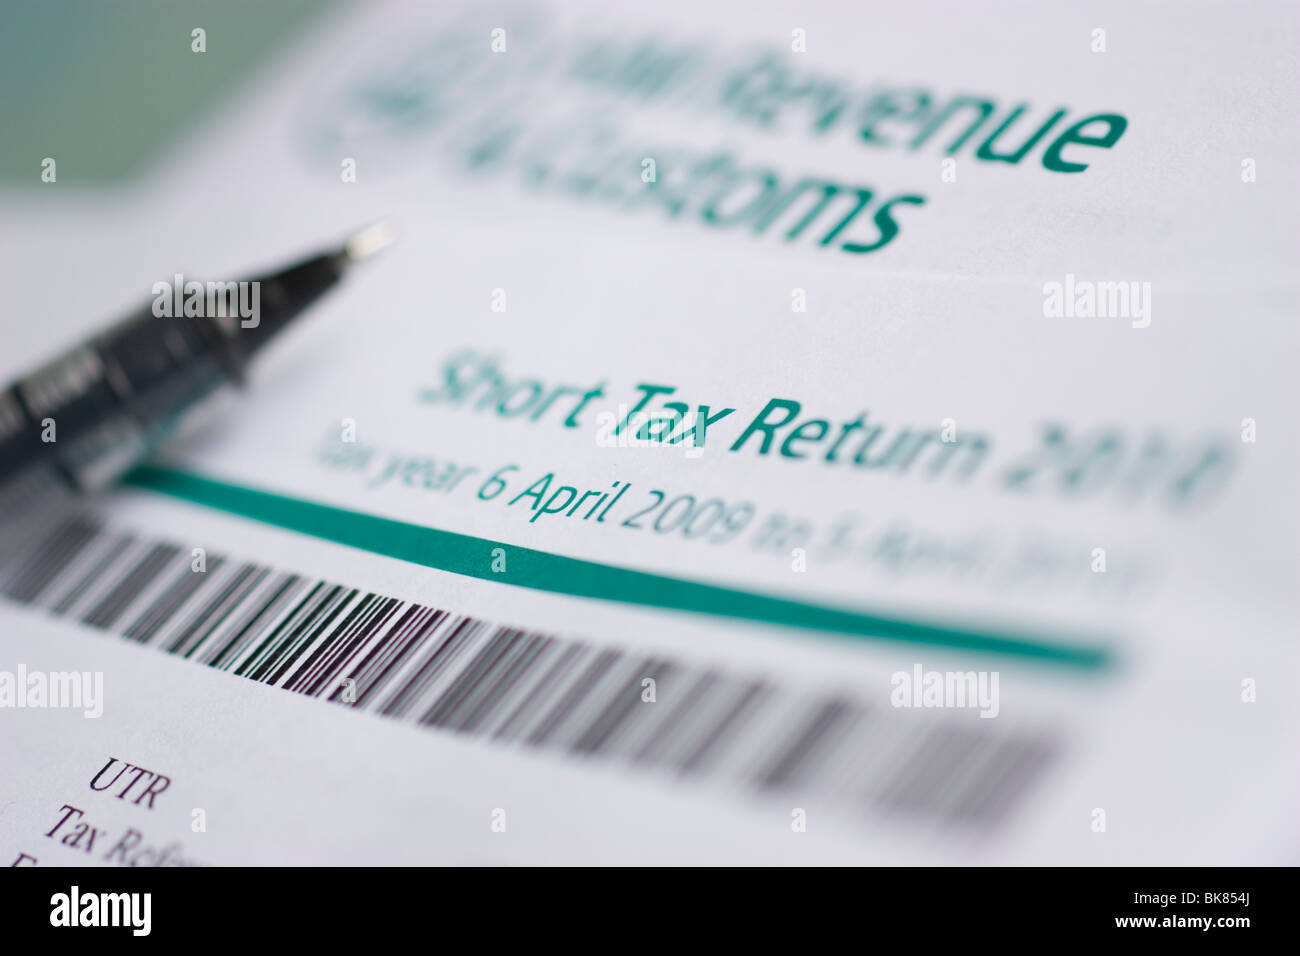 short tax return 2010  customs and revenue - Stock Image